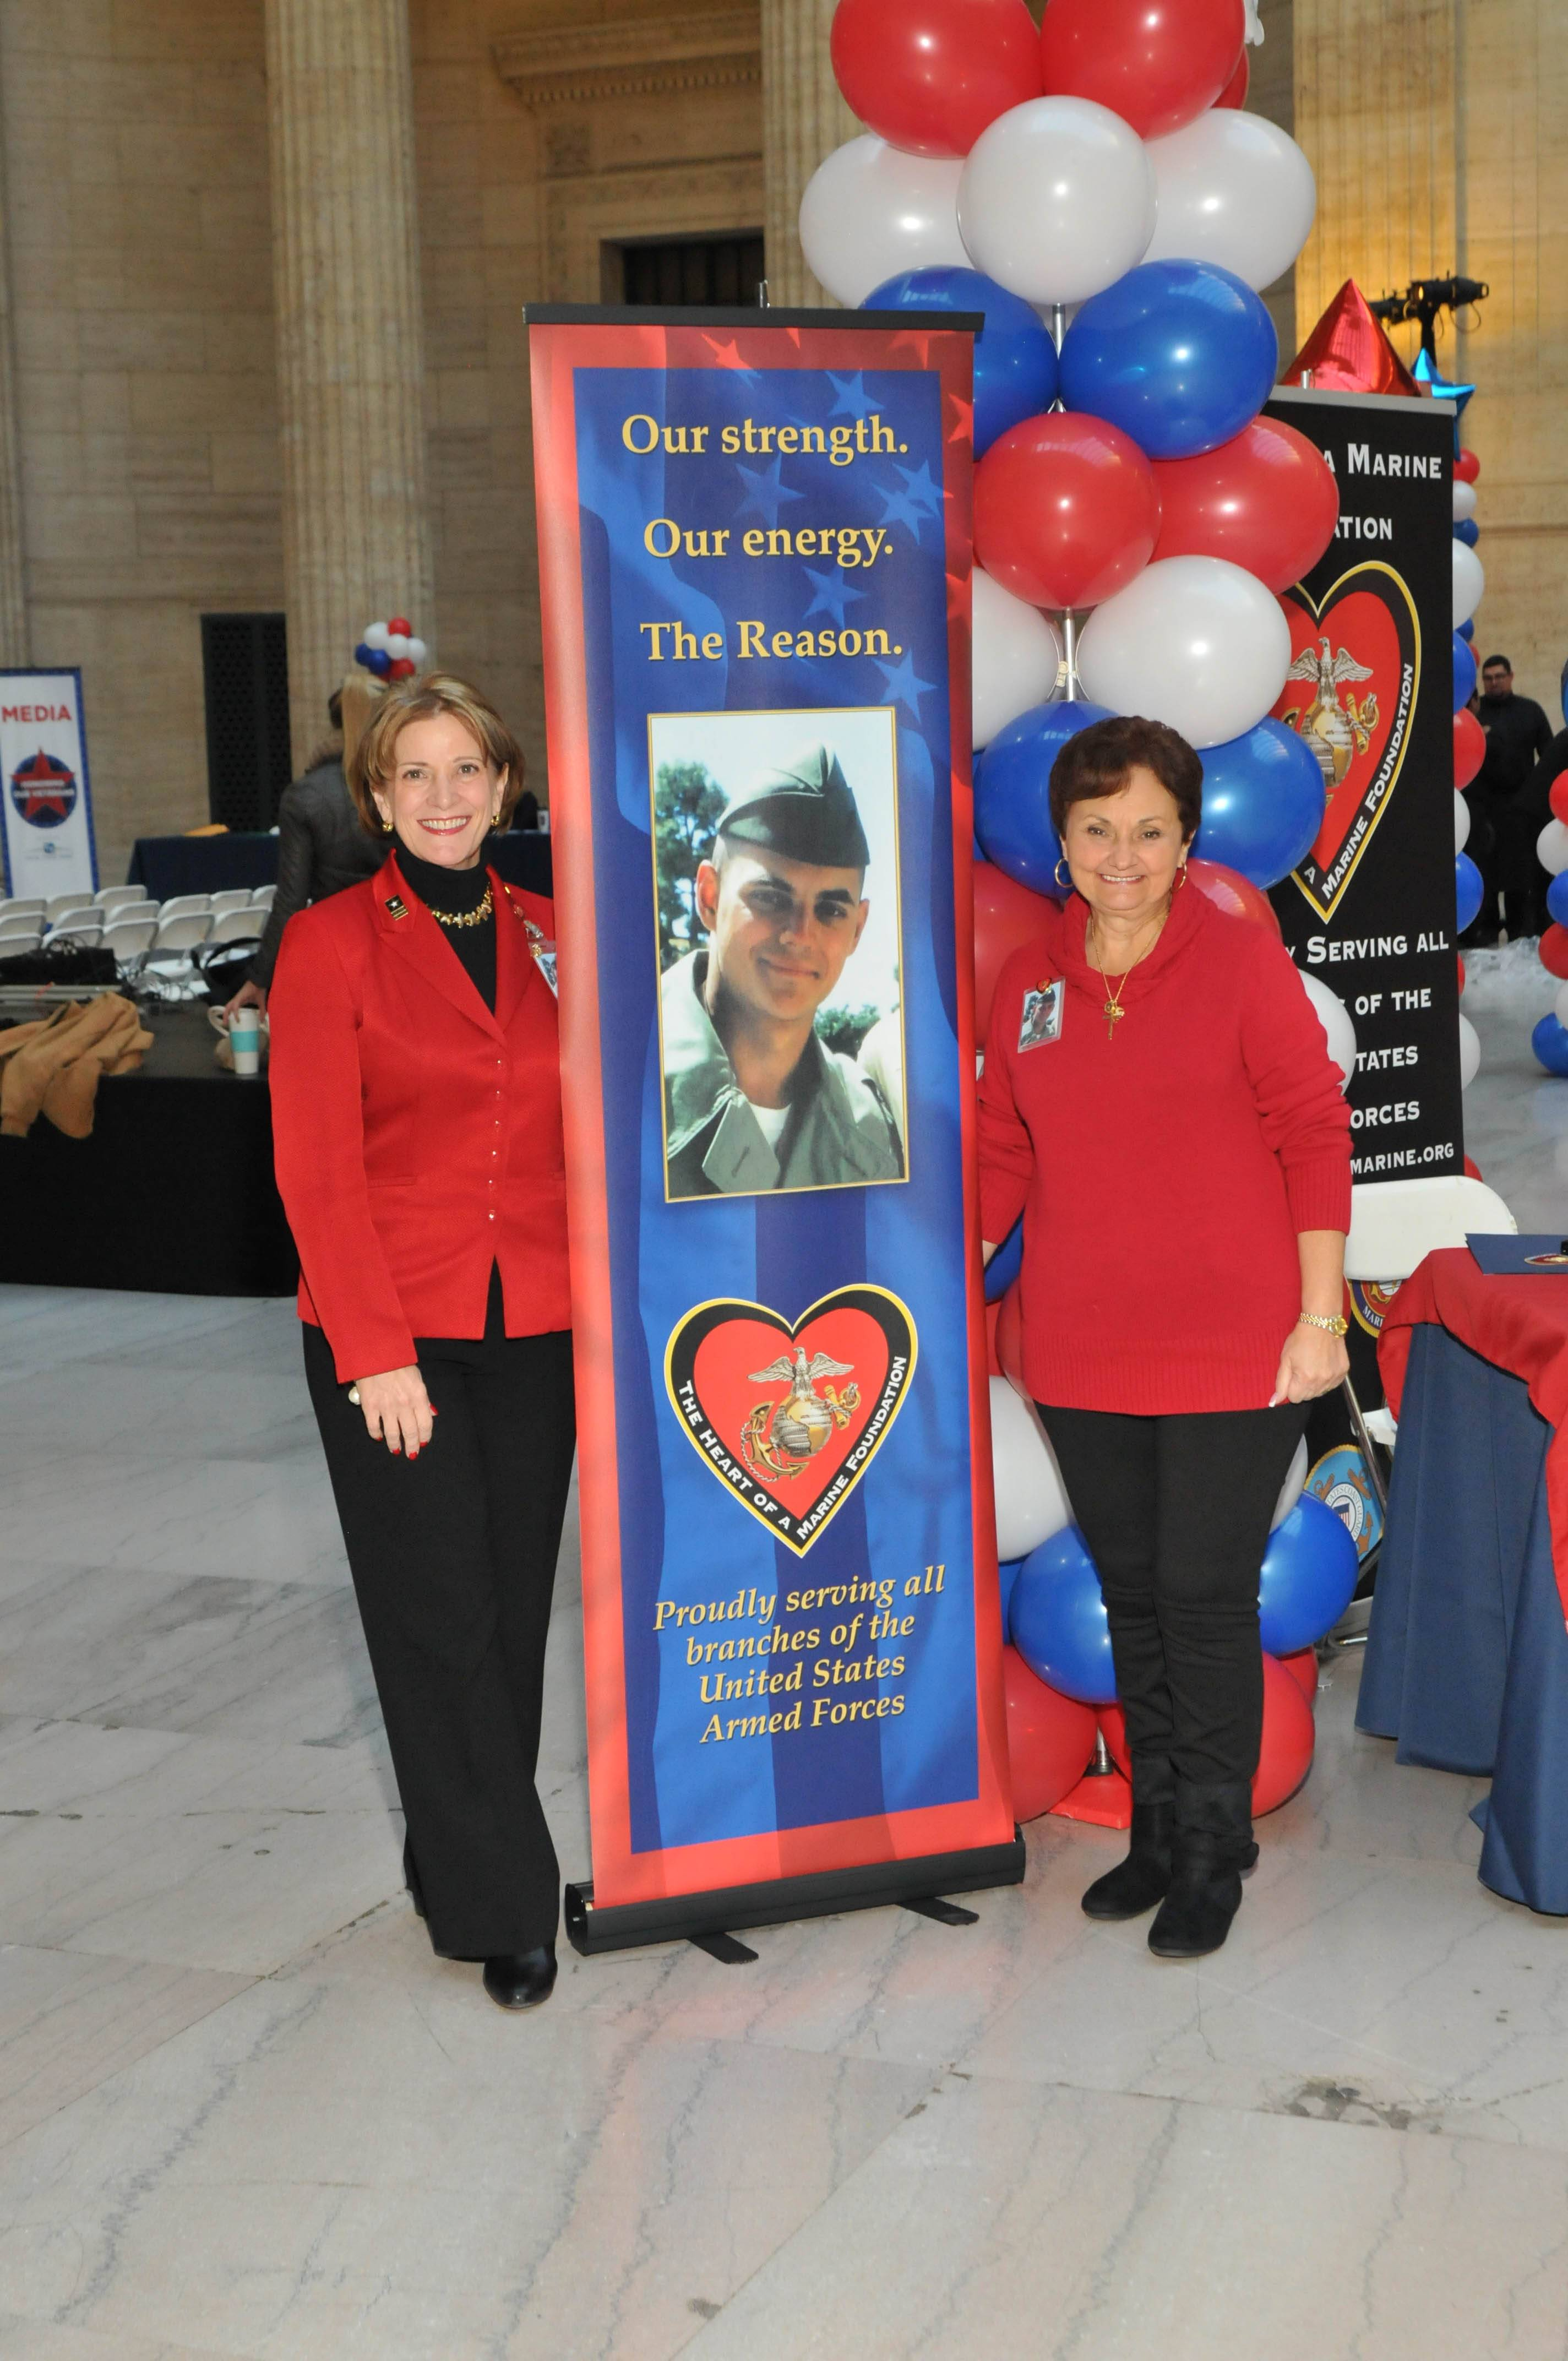 Barbara Matsukes and Georgette Frank, Heart of a Marine Foundation